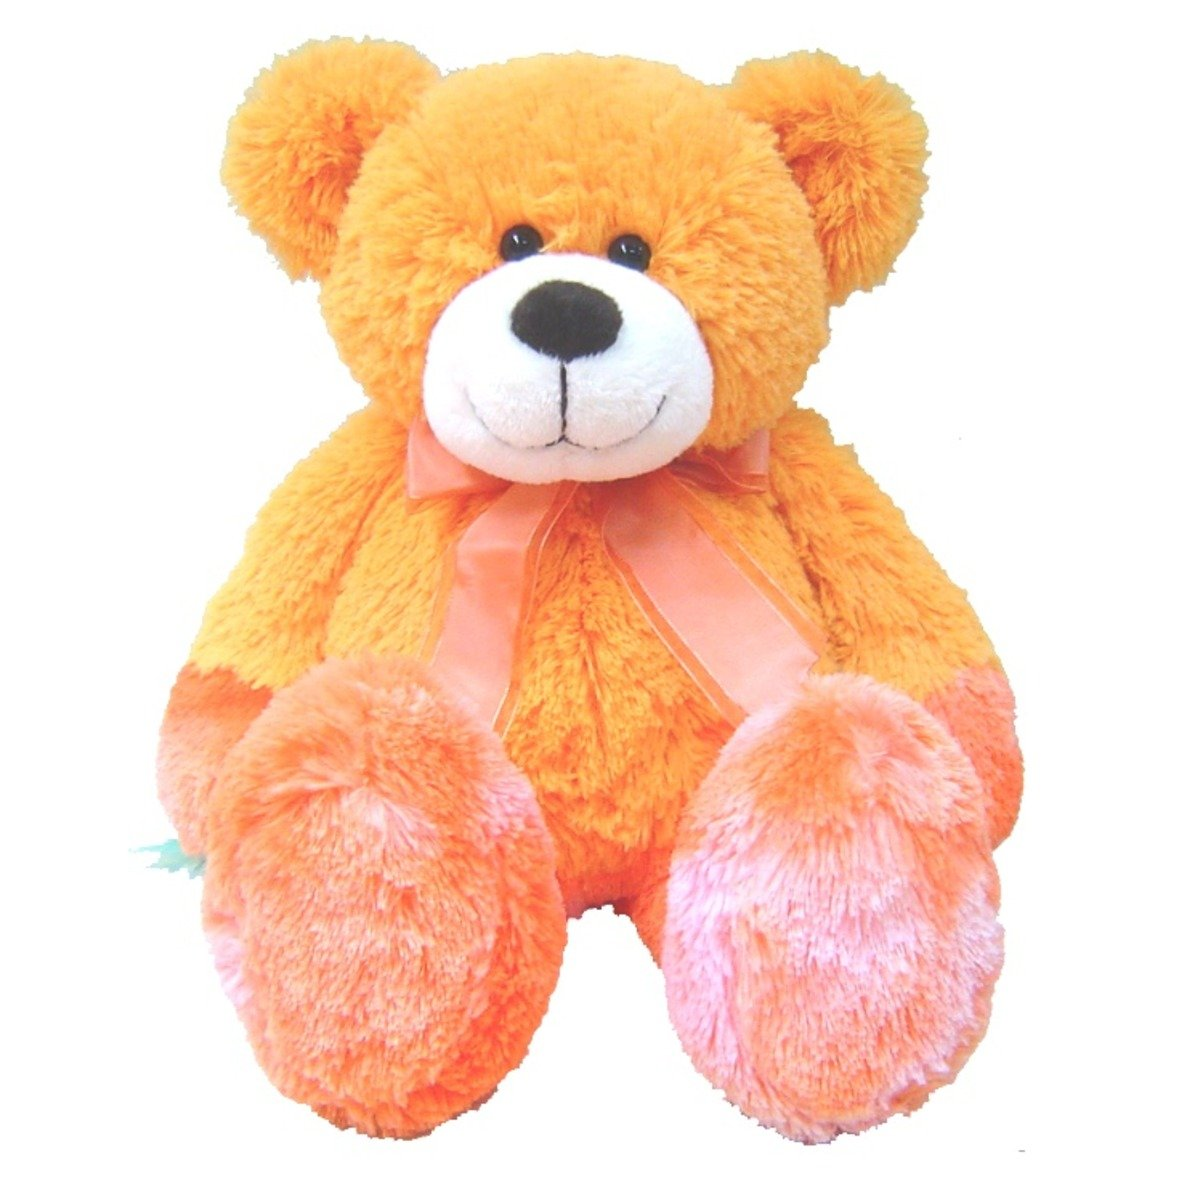 COLOR RICH - Soda Bear (62cm) - C18676XL